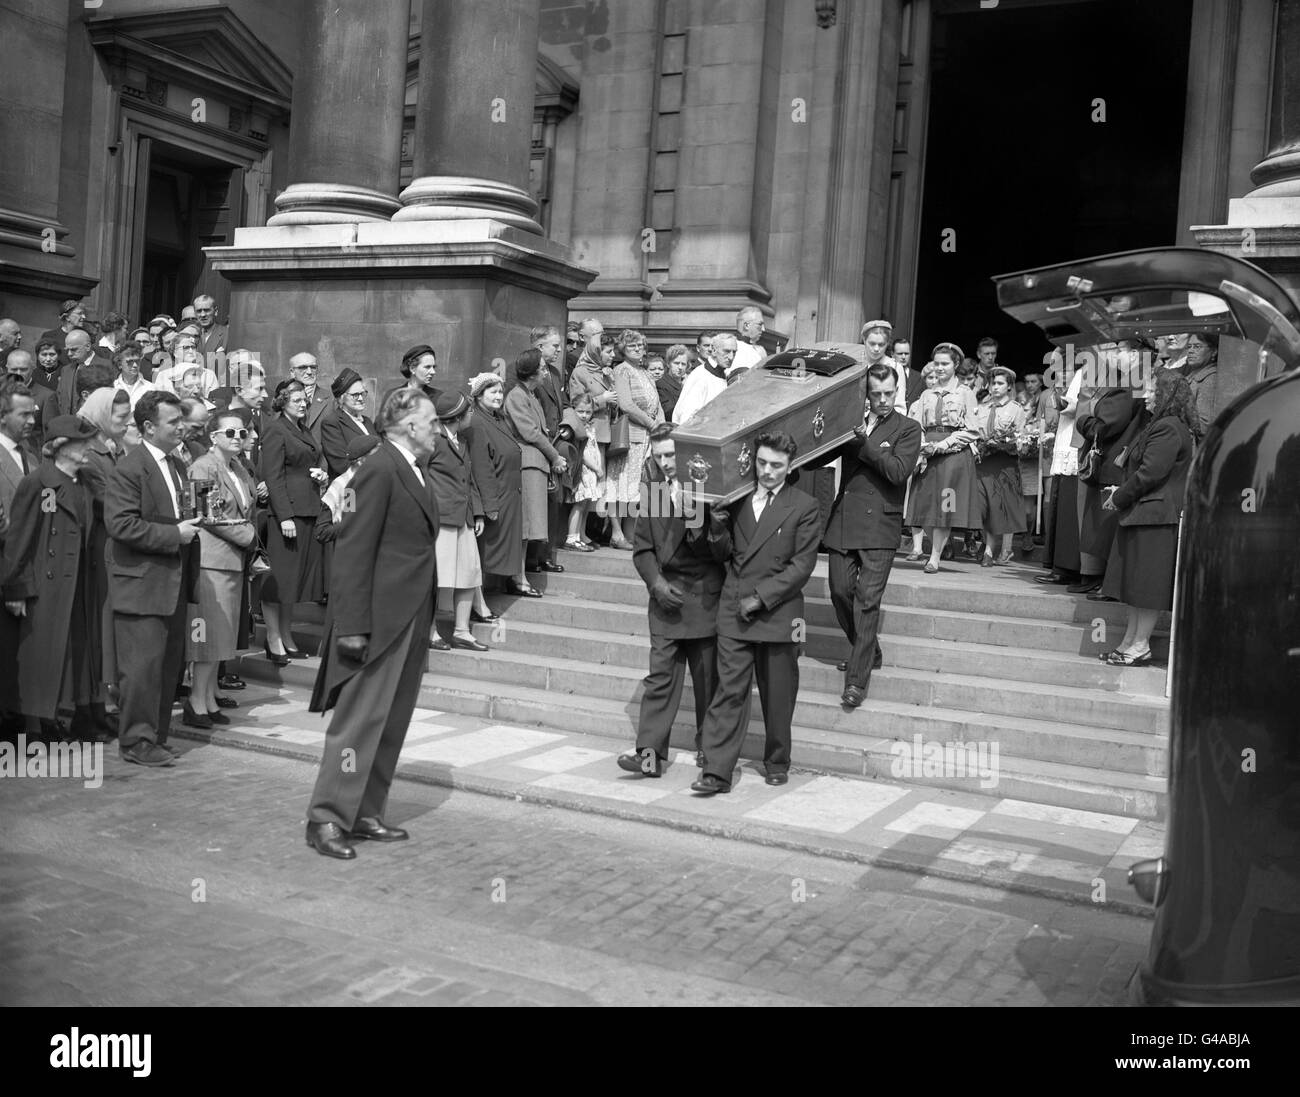 Crime - Countess Teresa Lubienska Funeral - Brompton Oratory, London Stock Photo